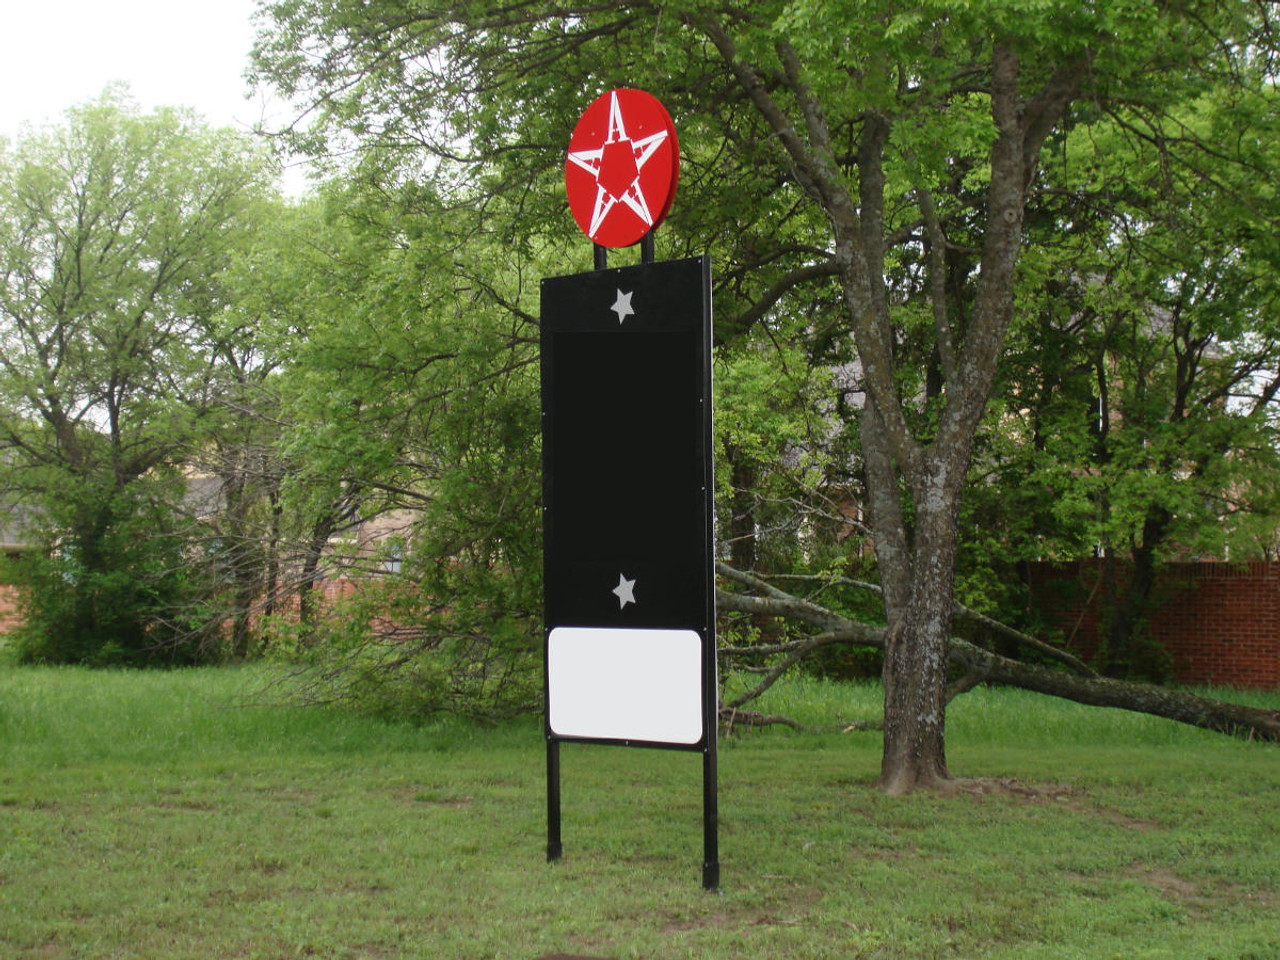 Sign Installed Using OZ-Post I3-850 Ornamental Post Anchors